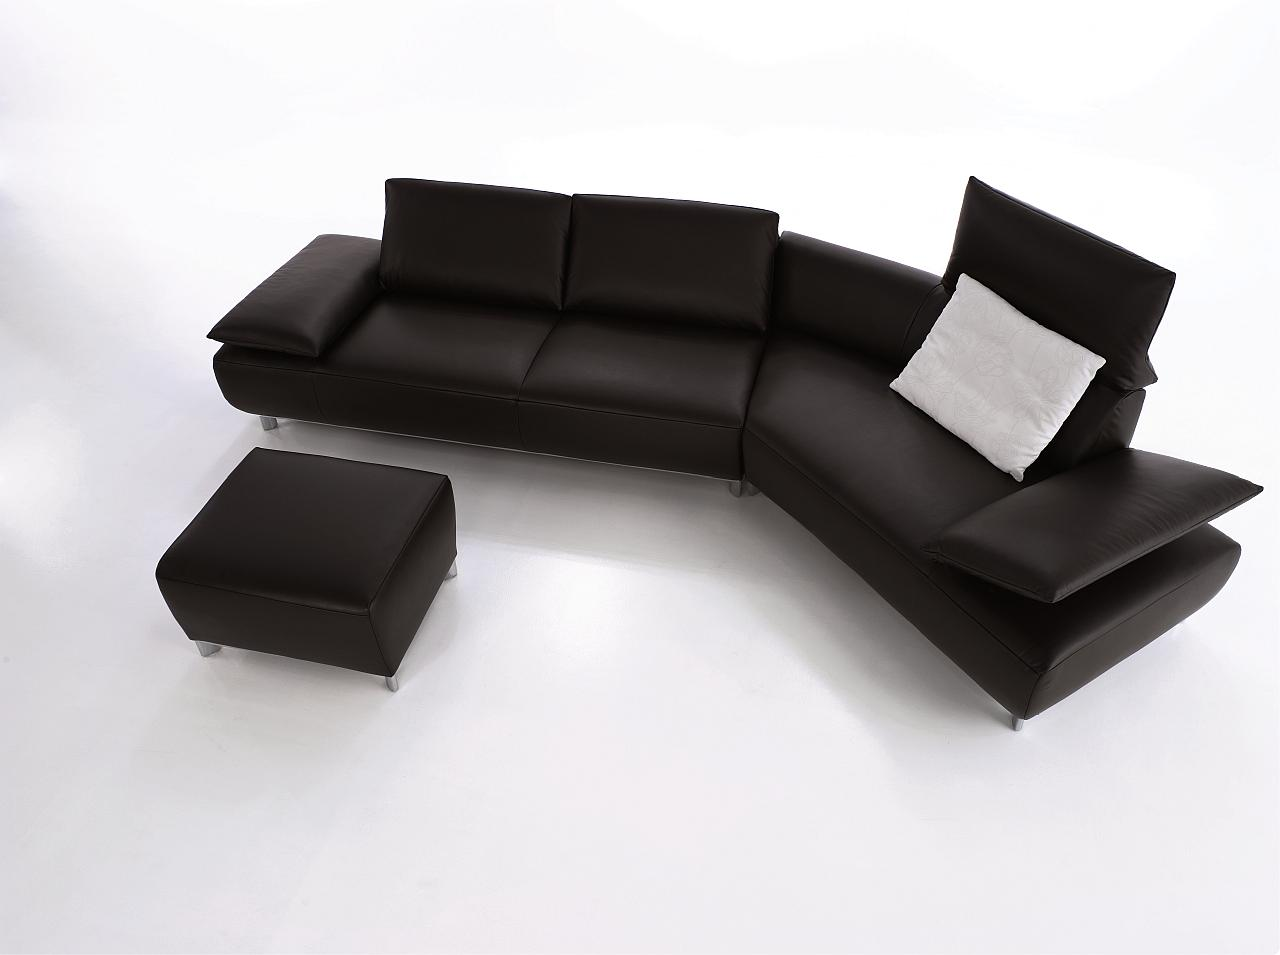 koinor sofa couch 2018 leder liegen kaufen. Black Bedroom Furniture Sets. Home Design Ideas